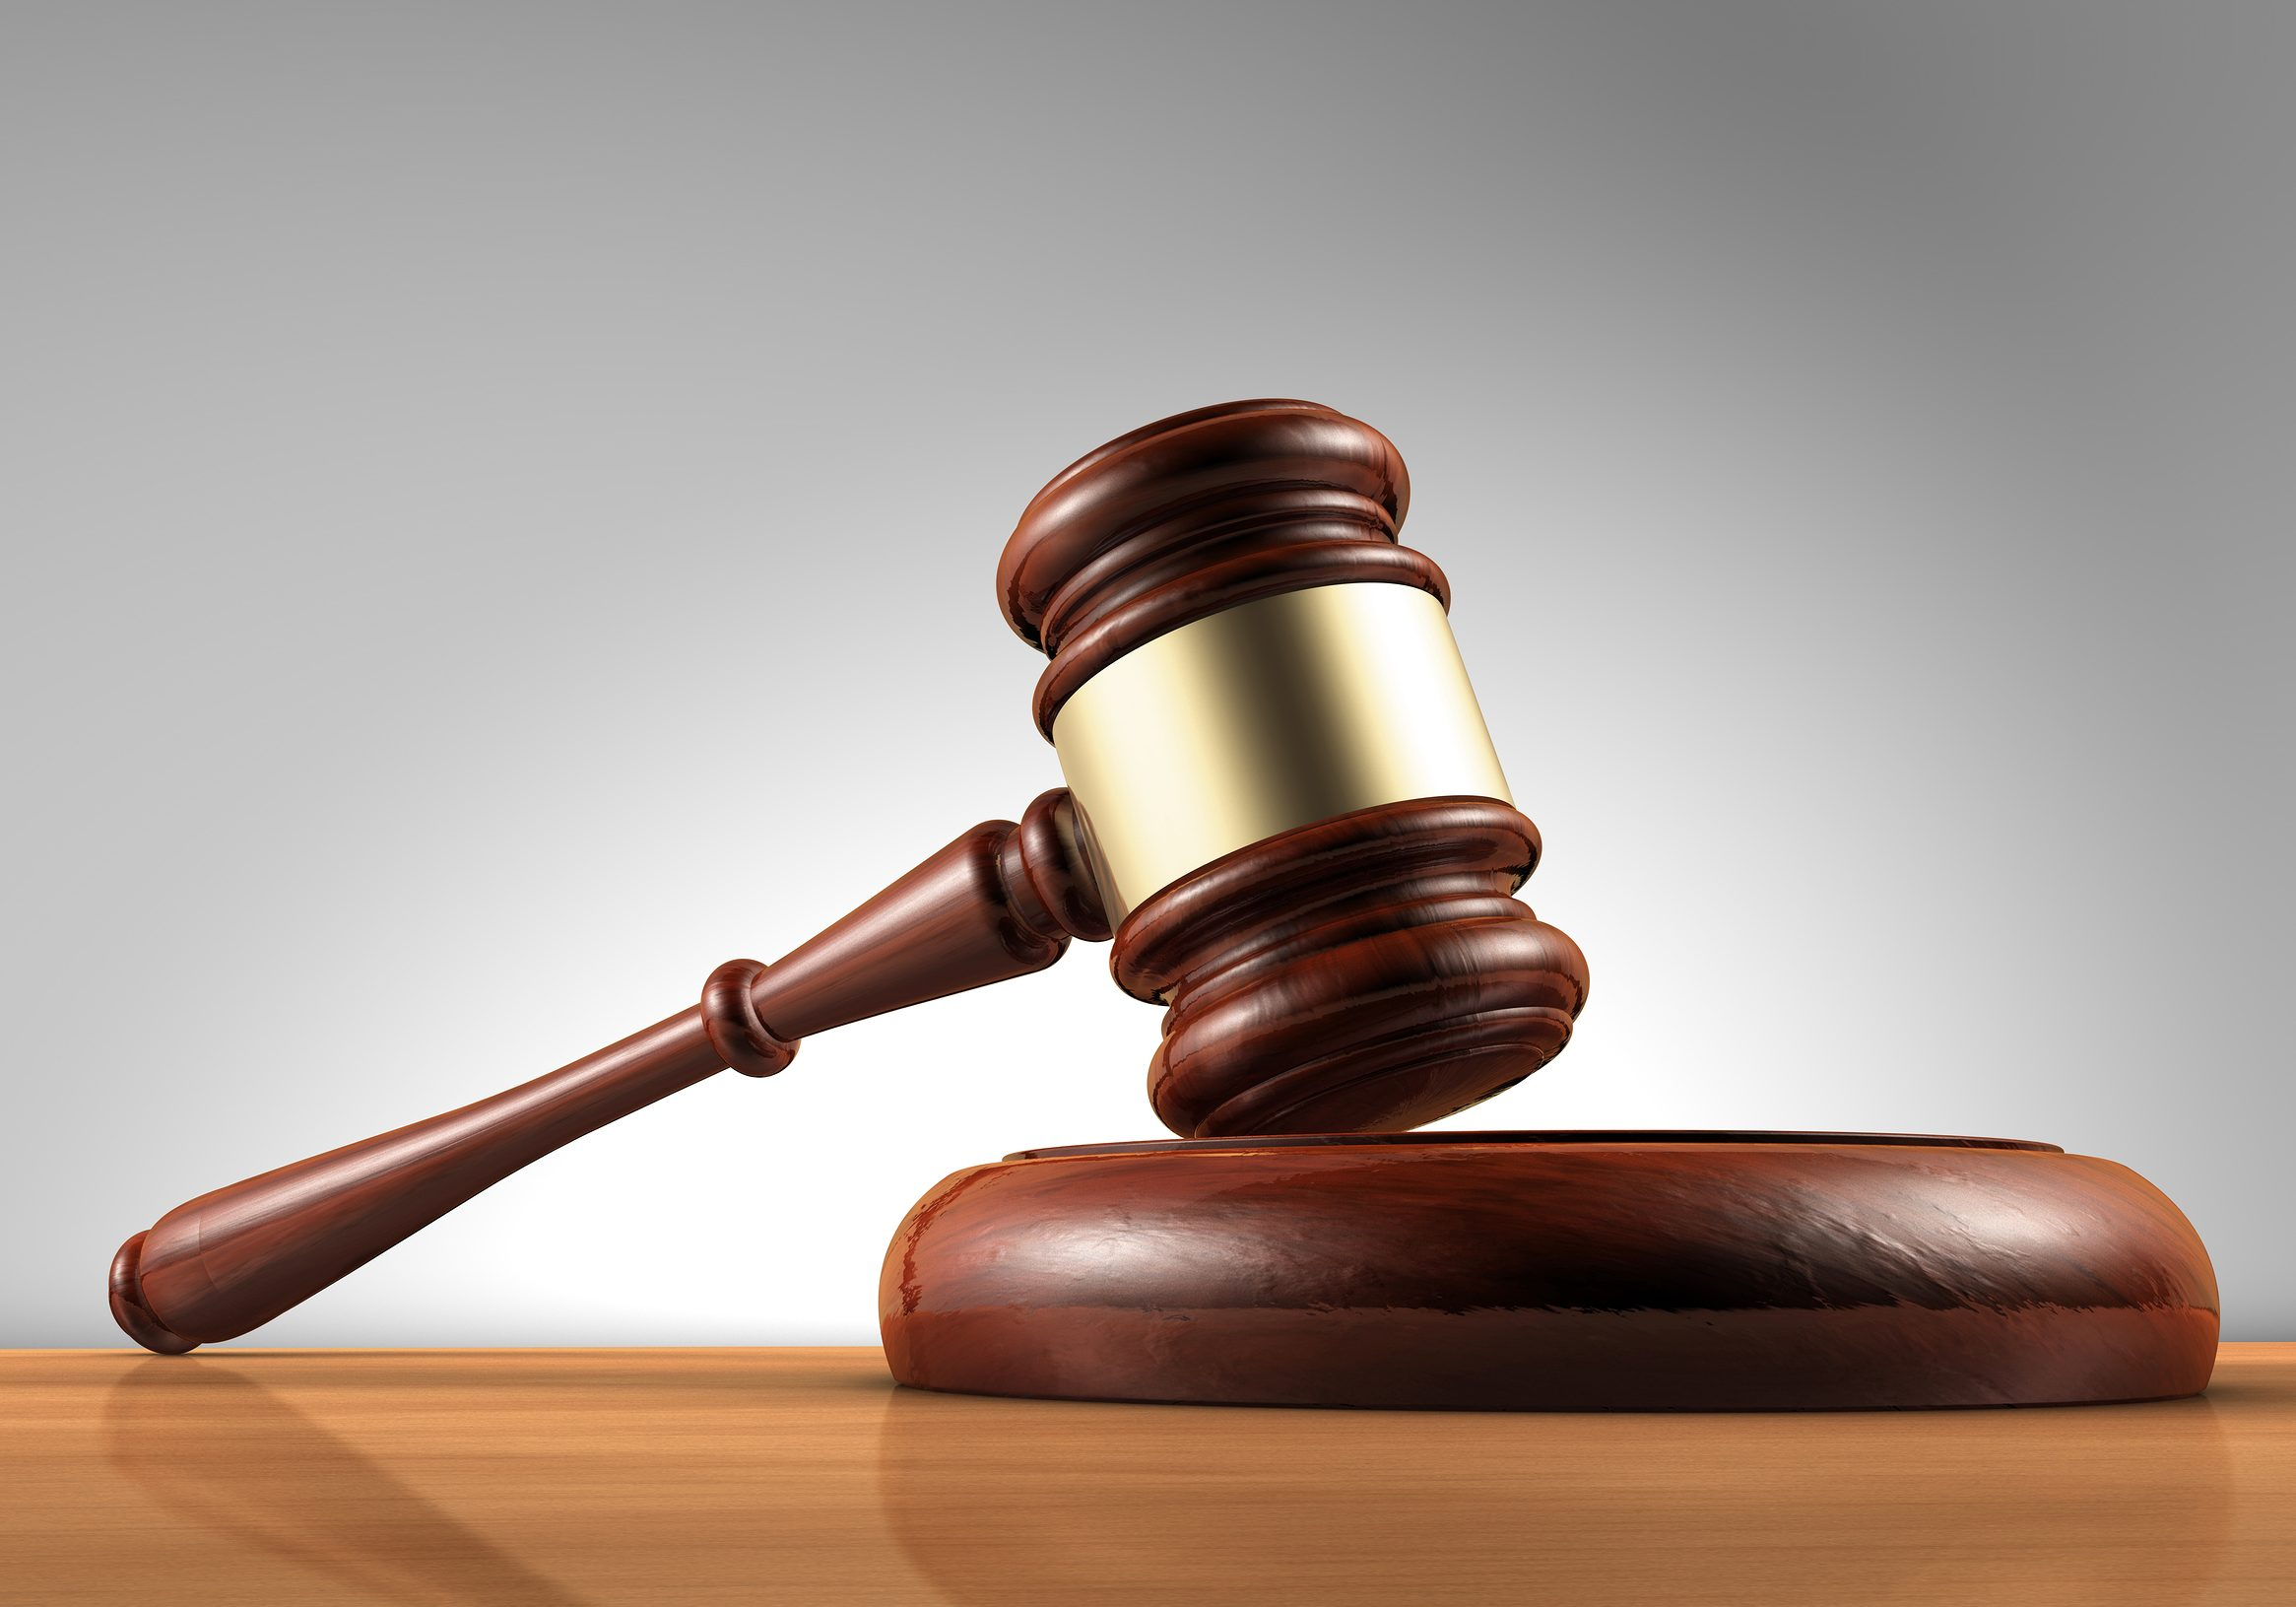 //A\Vashikaran court judicial spells #win court cases of any kind +276,Bengaluru,Services,Other Services,77traders